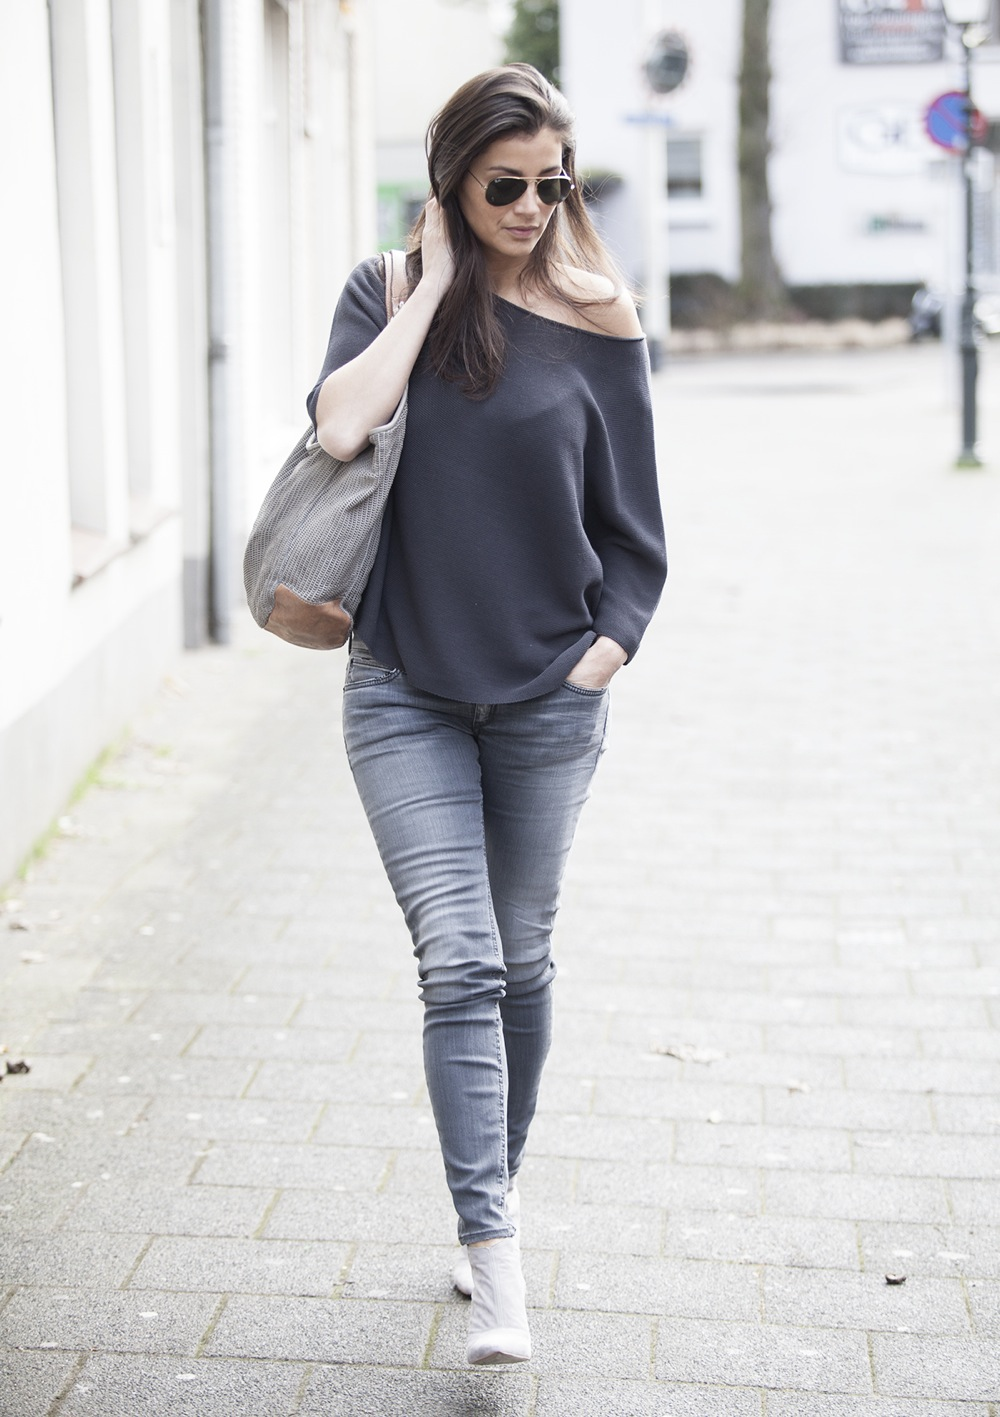 streetstyle look 2015 shades of grey BlogForShops